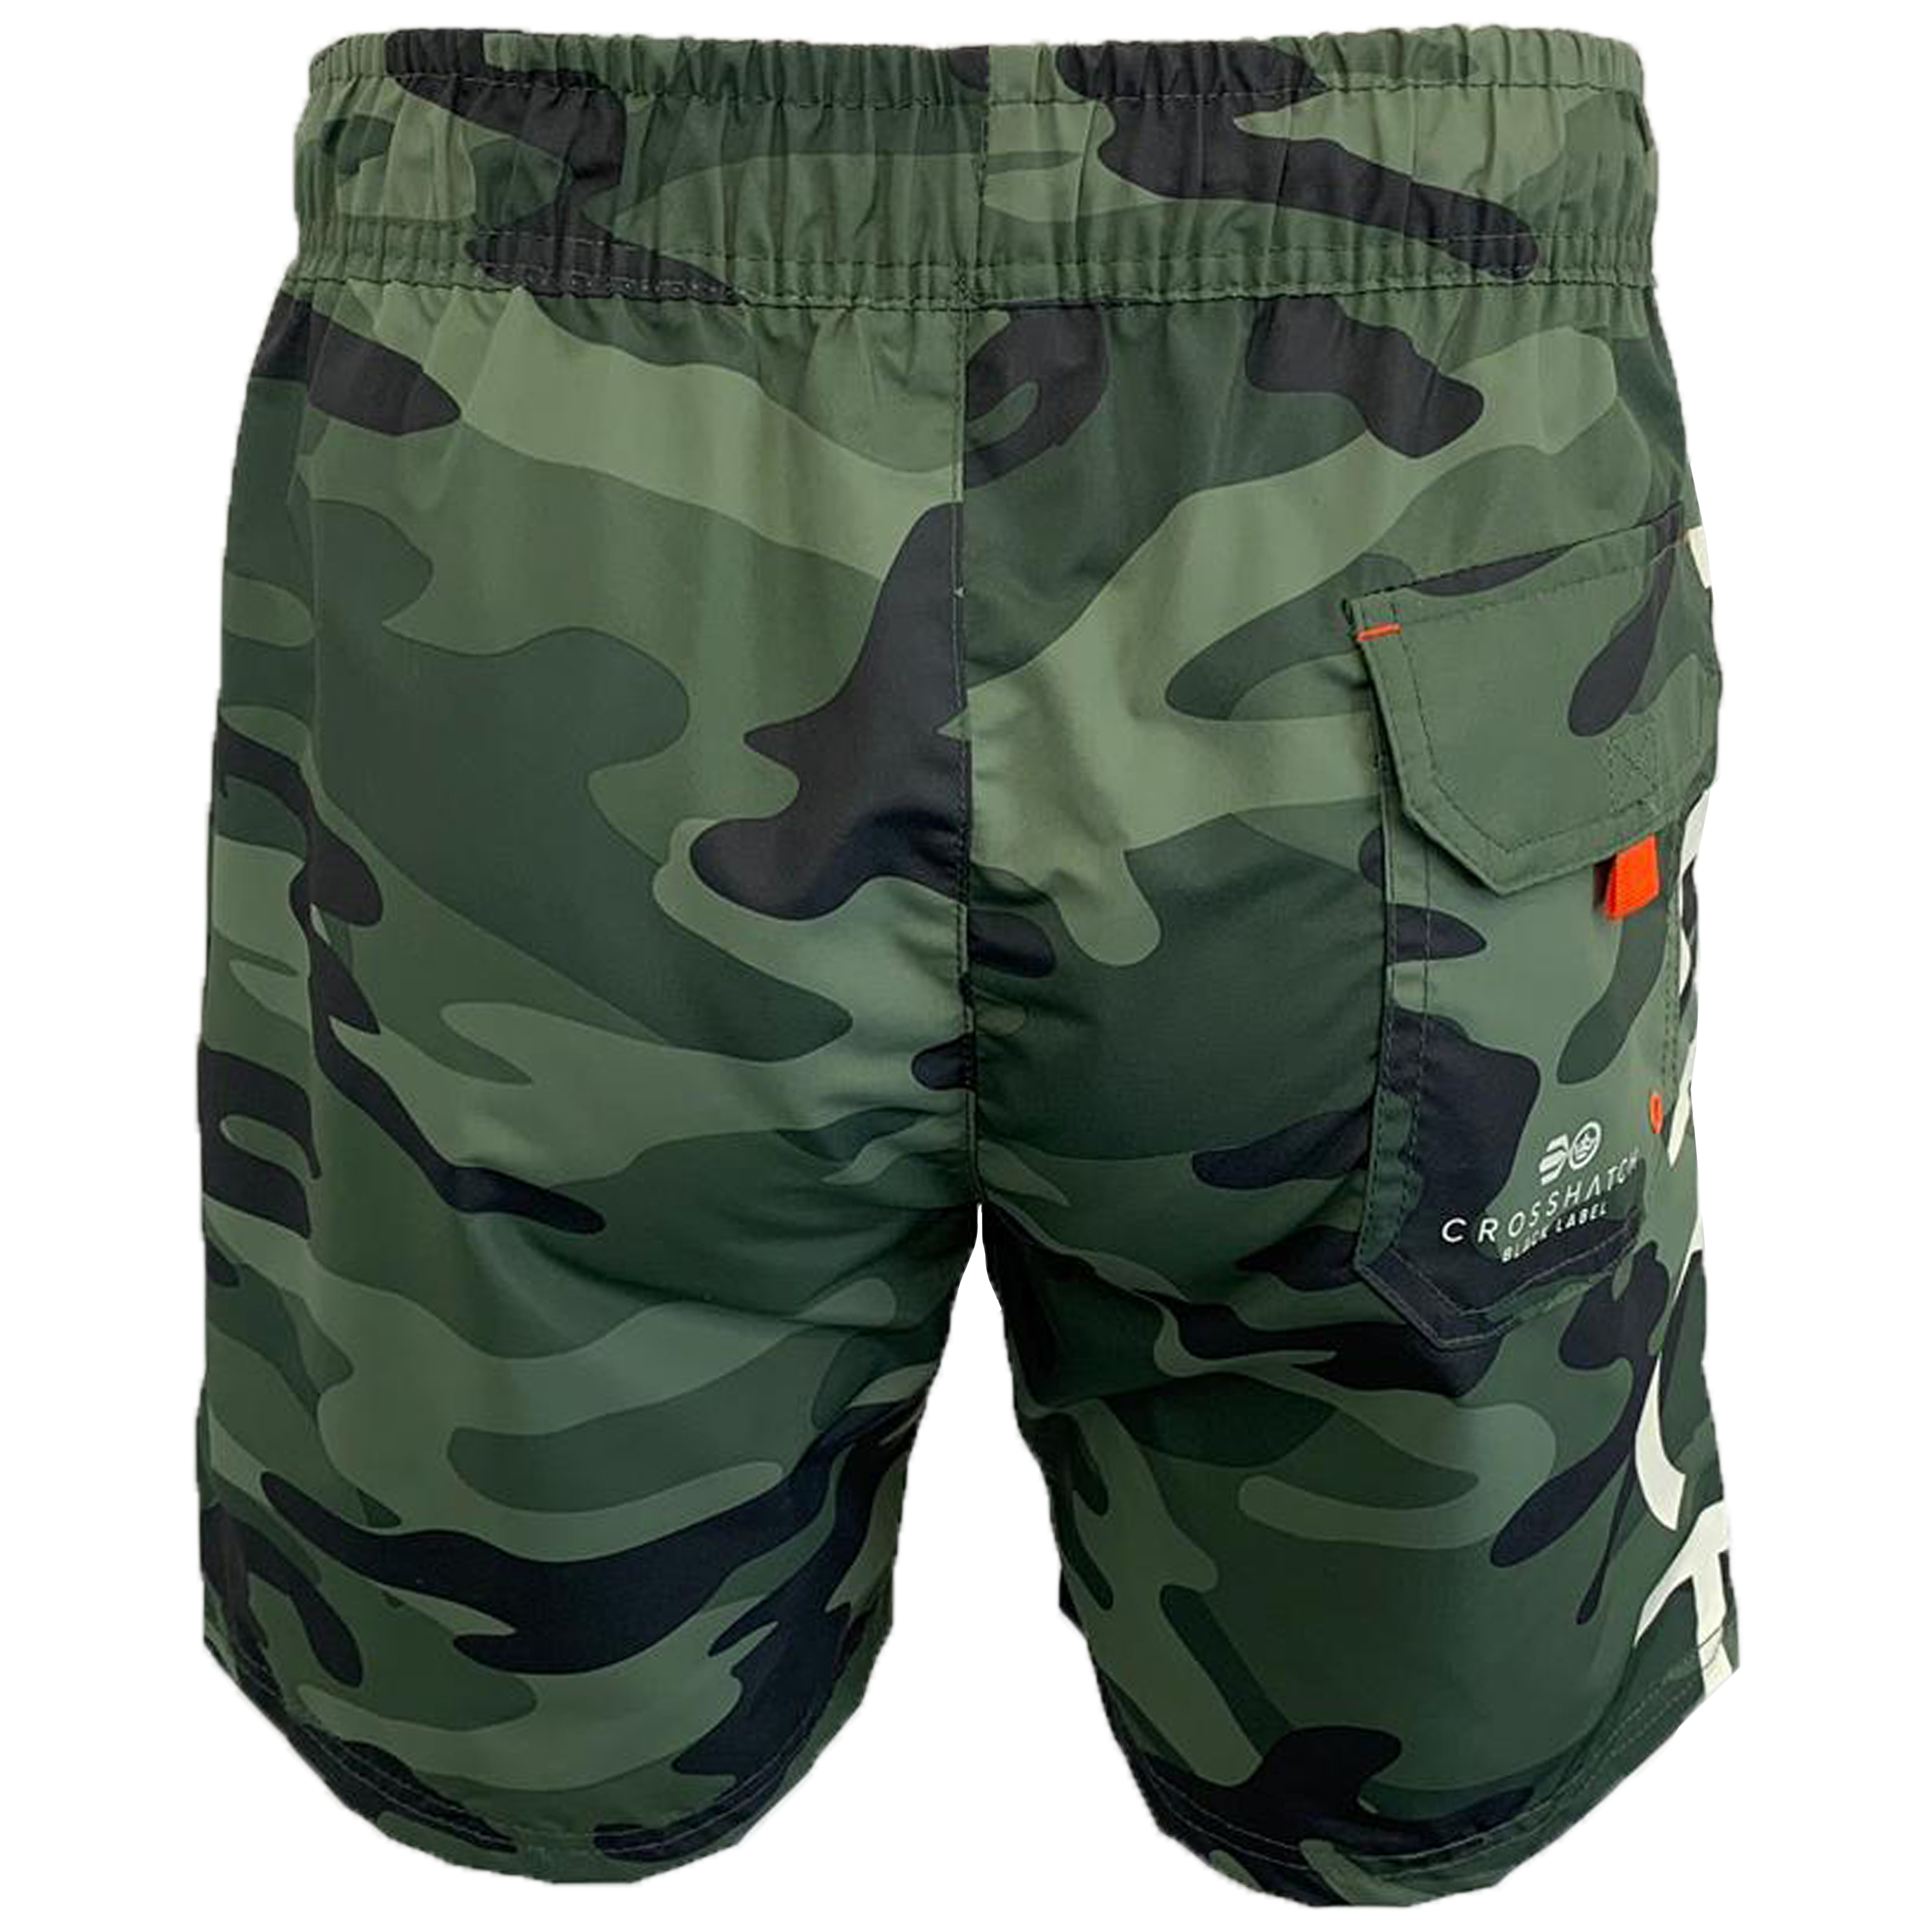 Mens-Camouflage-Swim-Shorts-Crosshatch-Army-Military-Knee-Length-Casual-Summer thumbnail 25